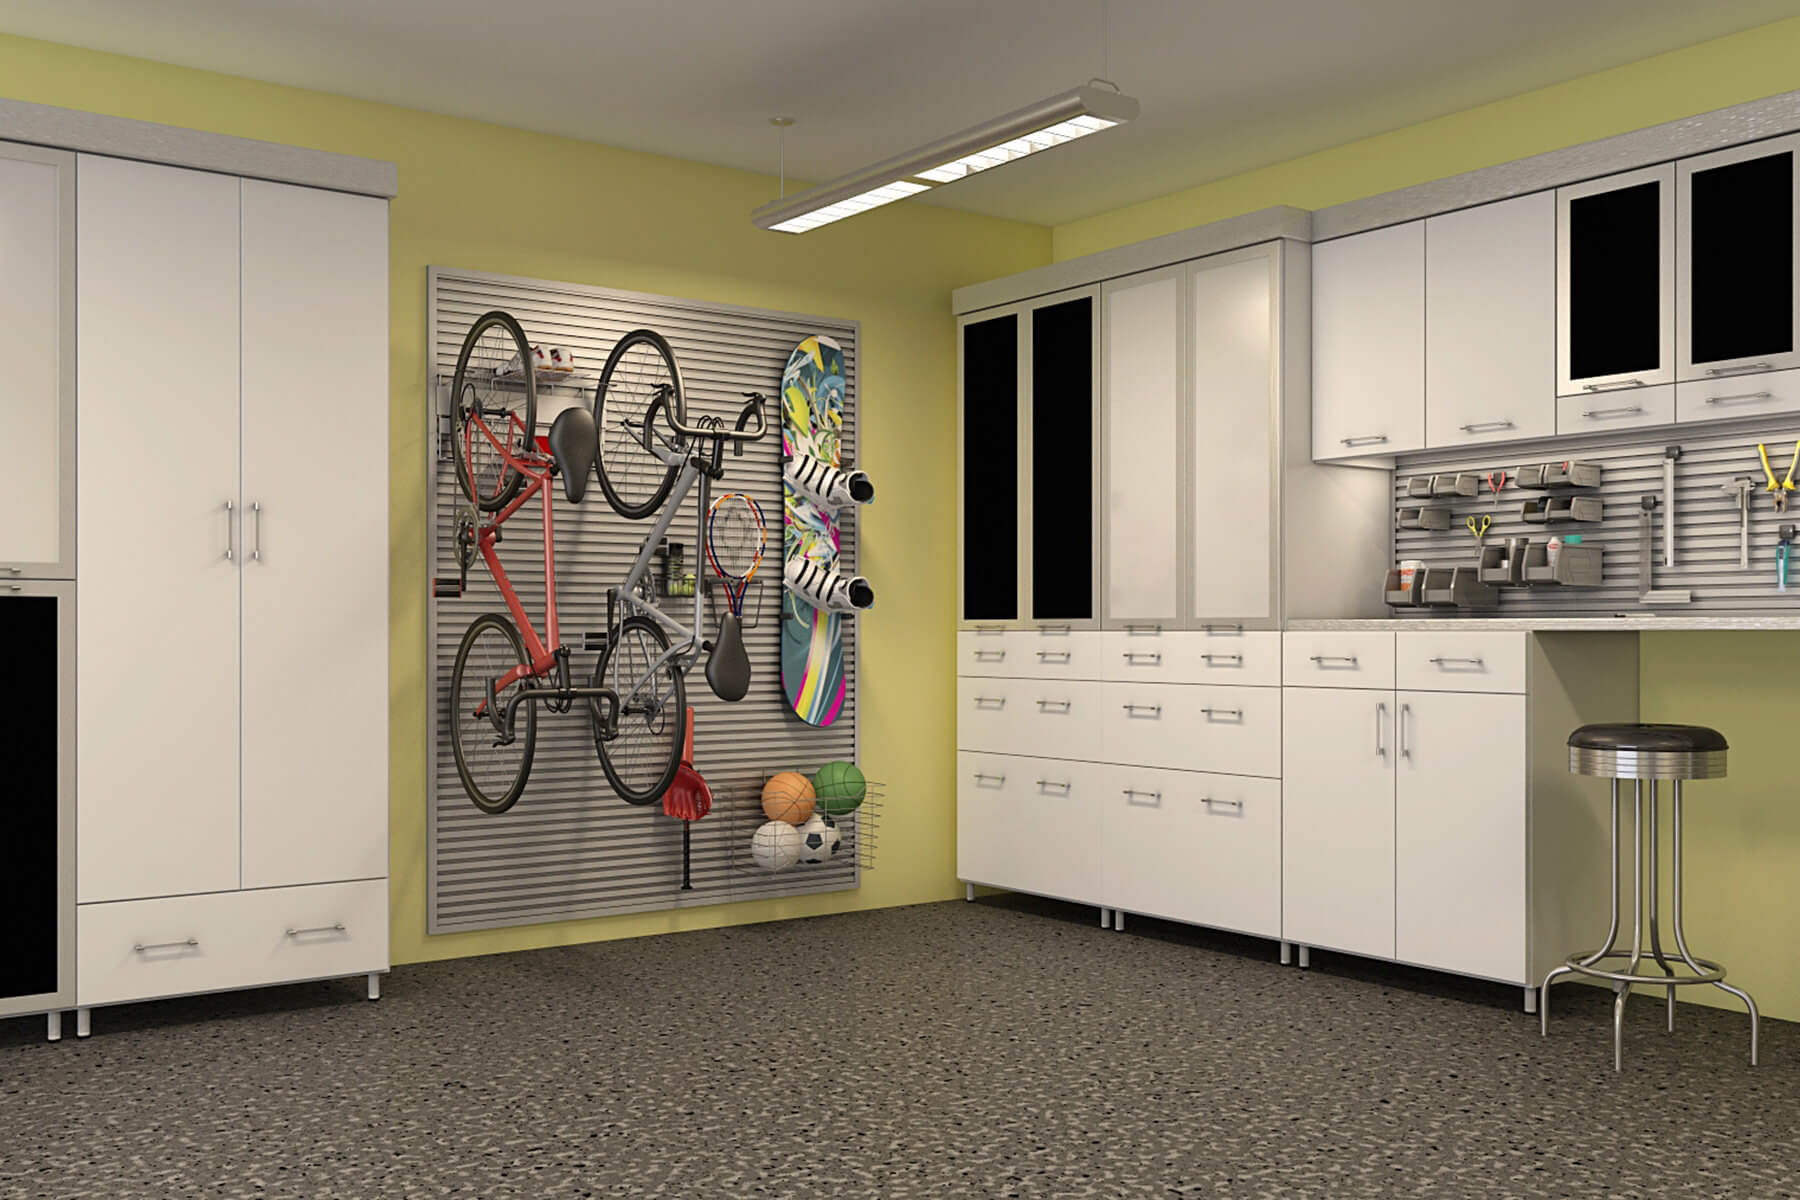 29 garage storage ideas plus 3 garage man caves this garage features the large square wall rack placed at a corner of the room amipublicfo Choice Image